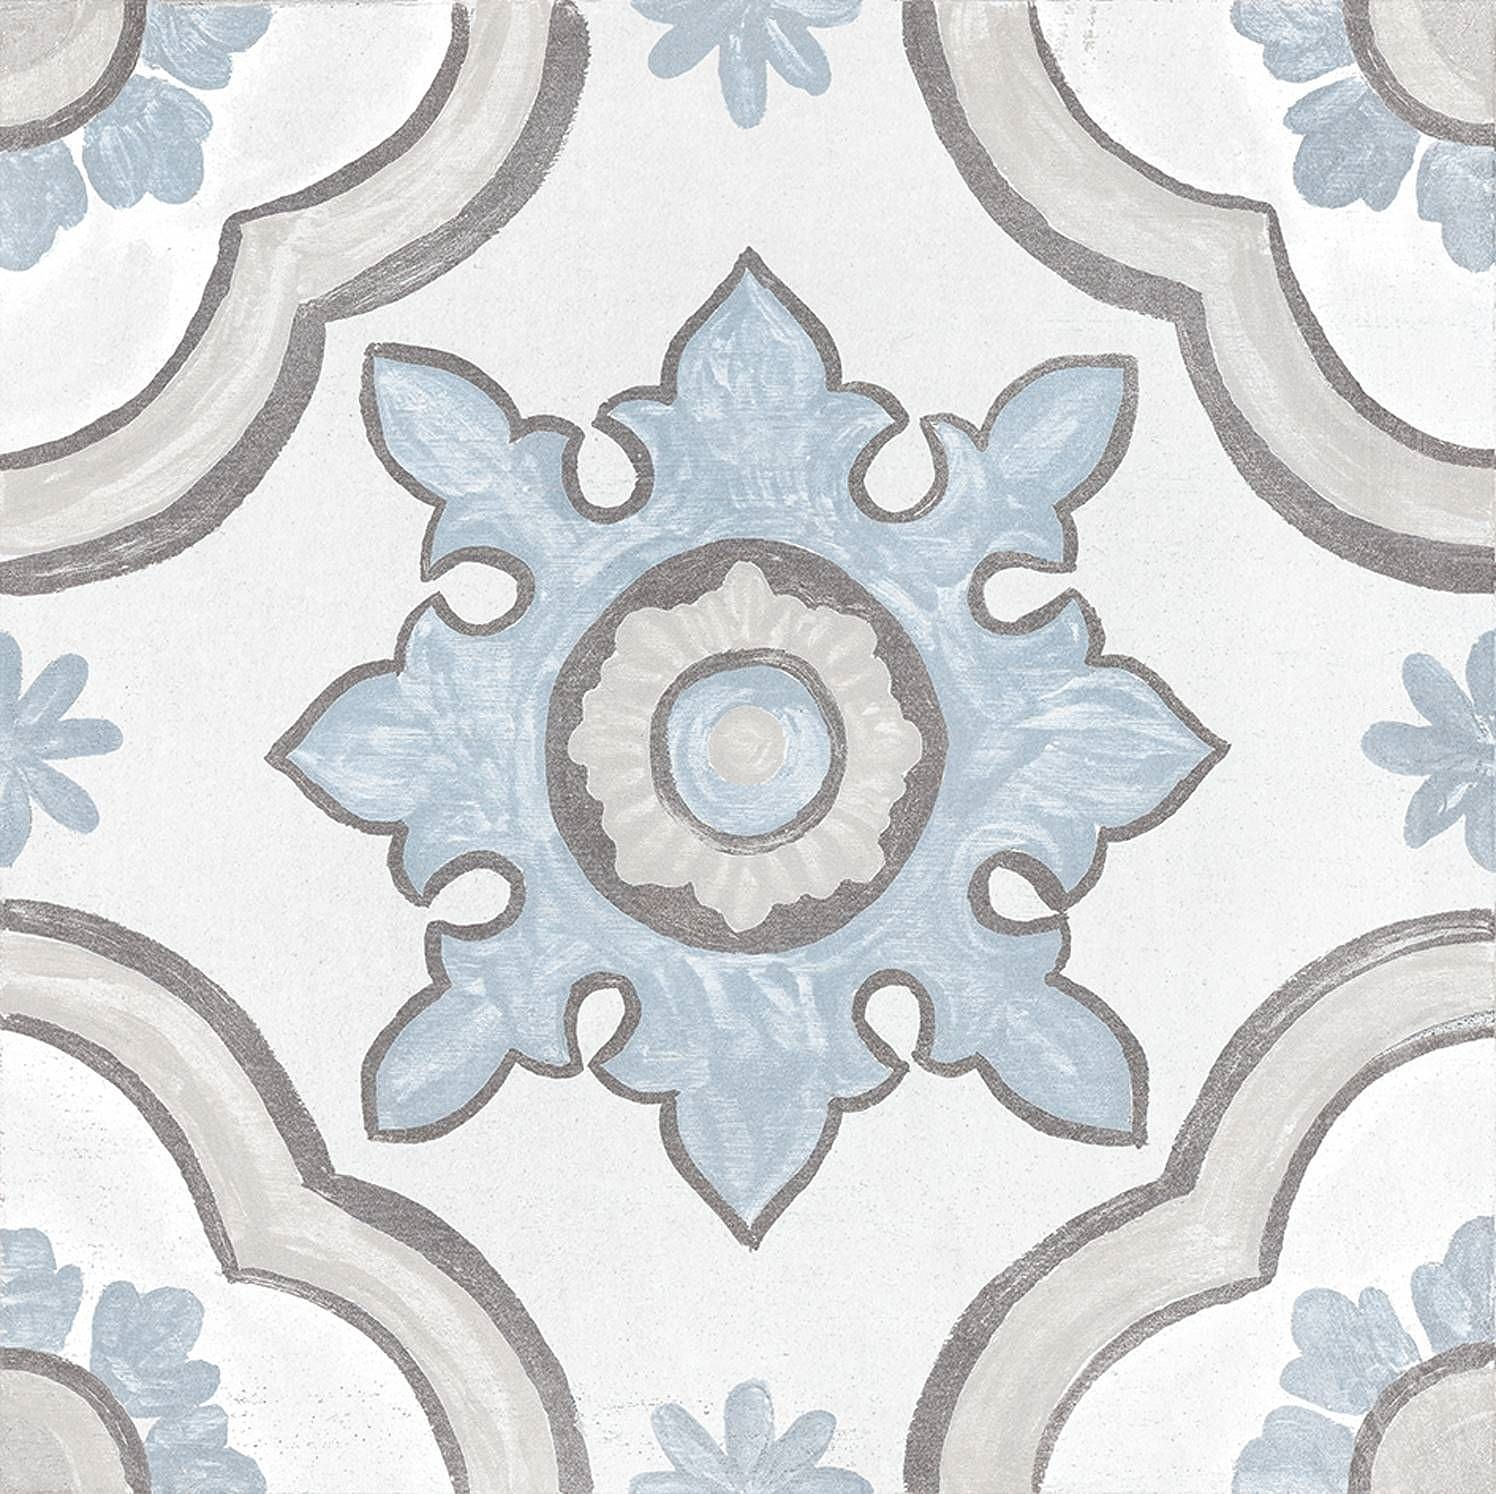 Decor Basma White Adobe By Cifre Tile Expert Distributor